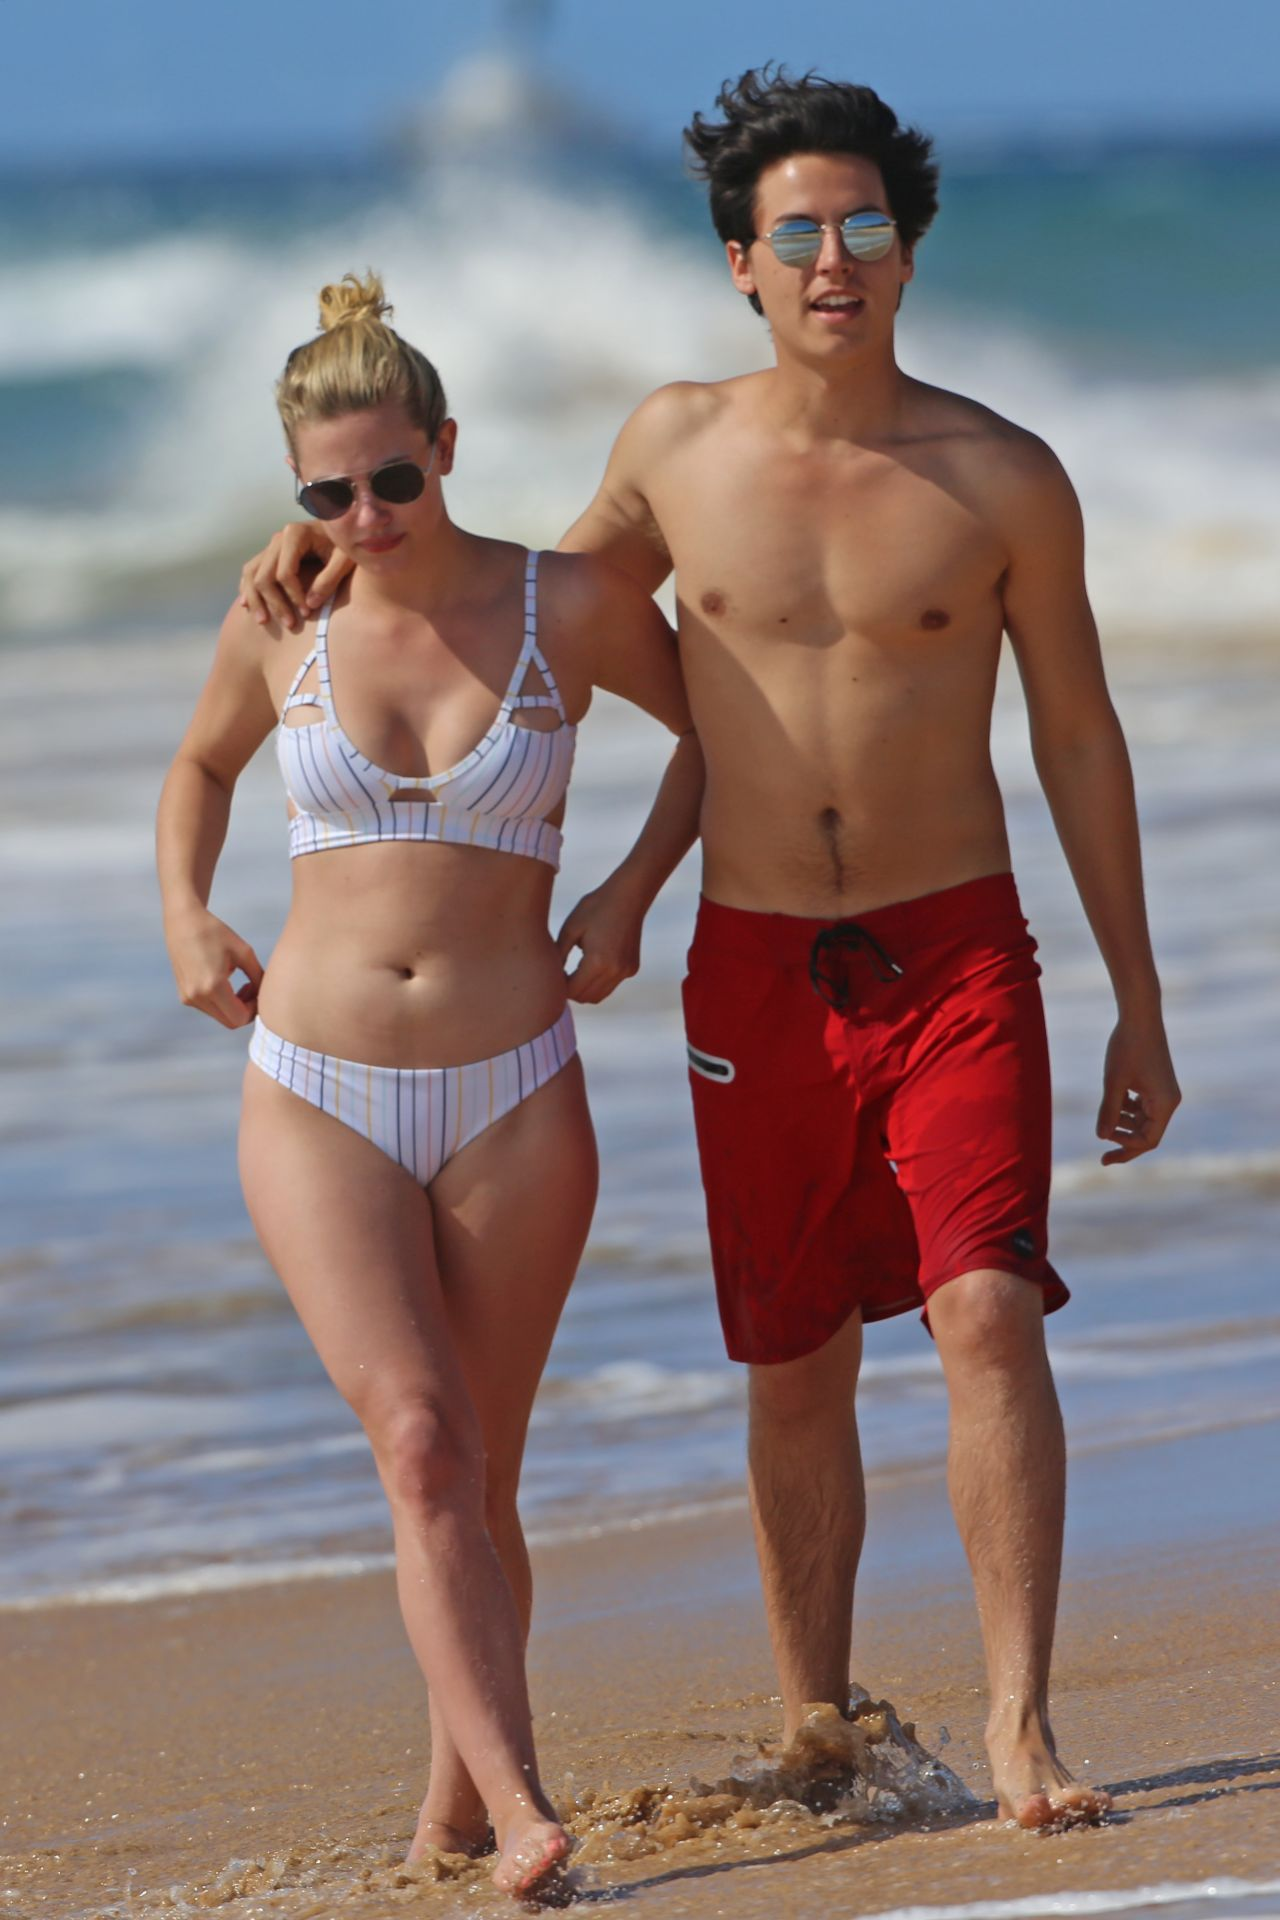 Lili Reinhart And Cole Sprouseon The Beach In Hawaii